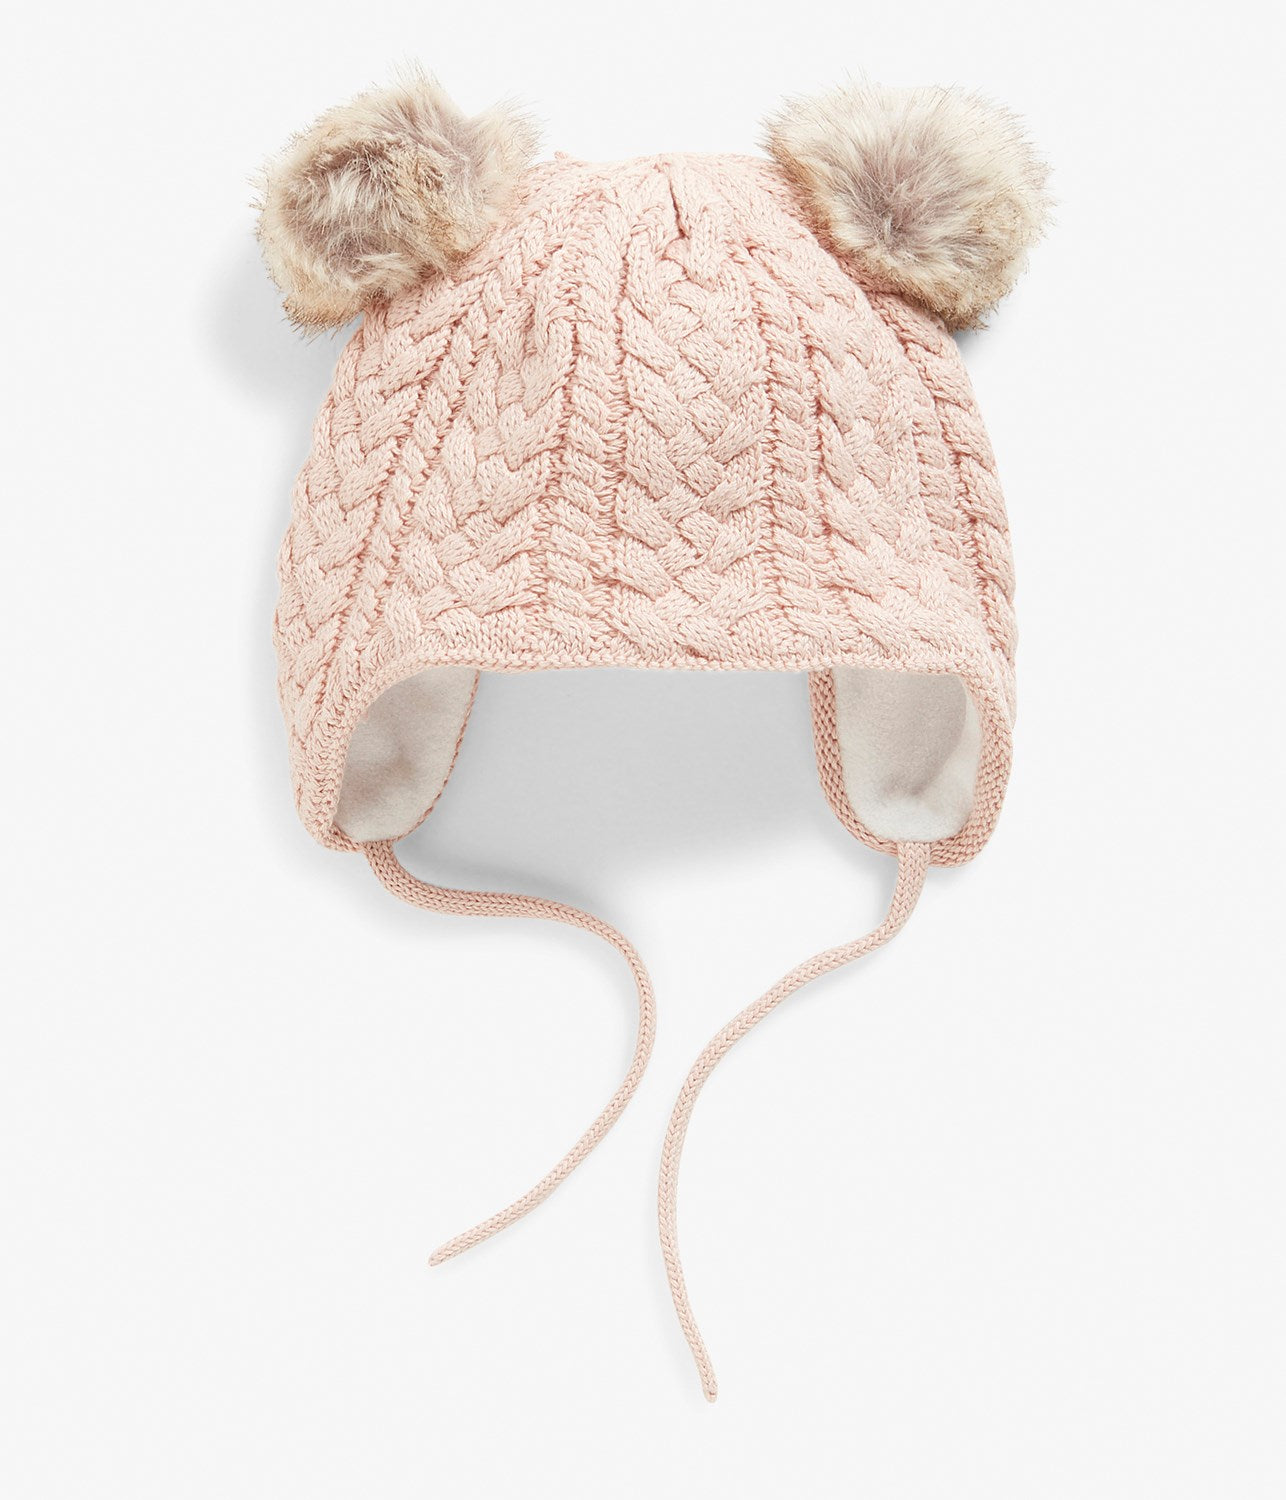 Baby pink knitted beanie with pom poms